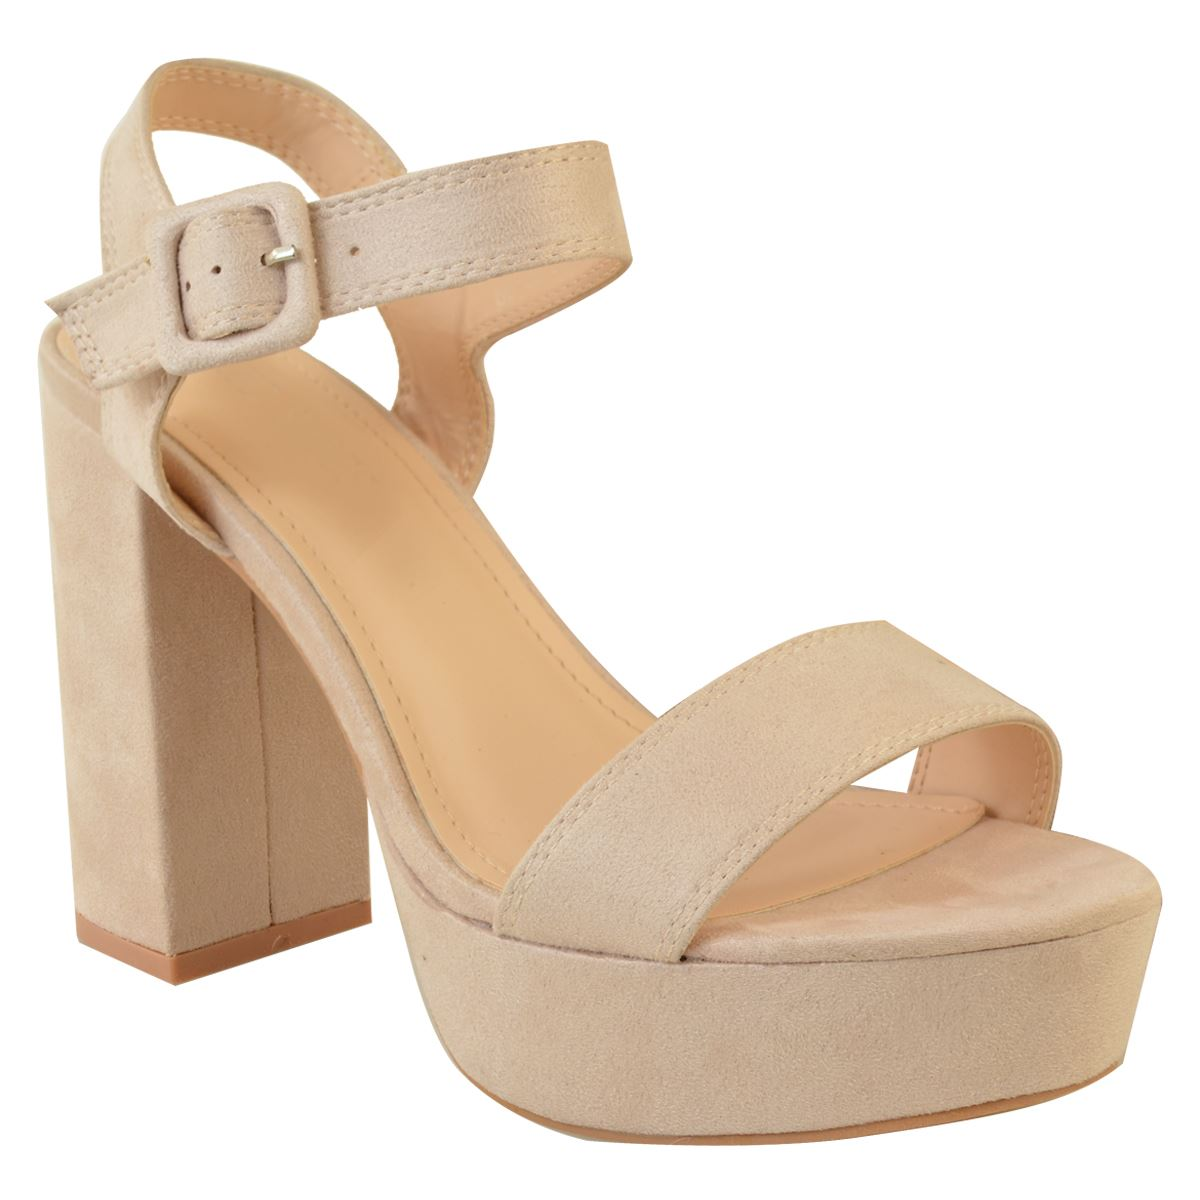 New-Womens-Summer-Platform-High-Heel-Sandals-Ladies-Open-Toe-Strappy-Party-Shoes thumbnail 33